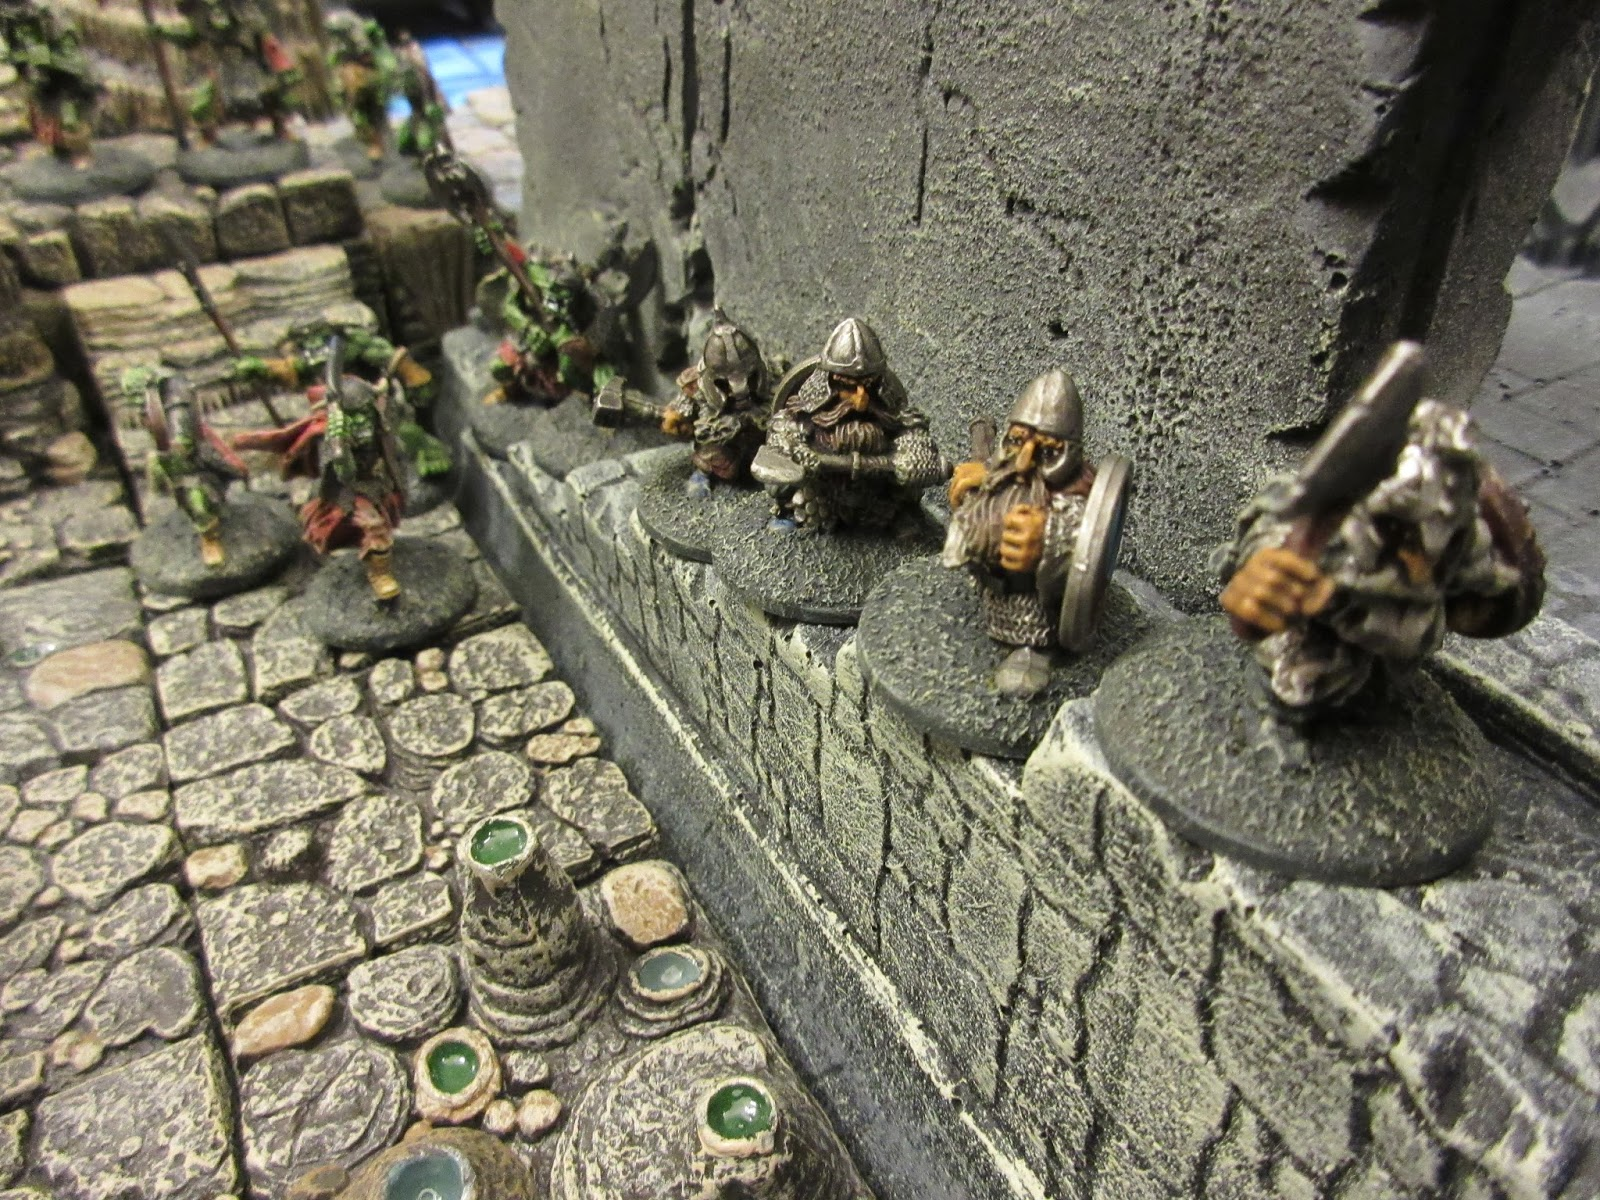 Mars Miniatures - The Moria Reclamation Project, Oldhammer